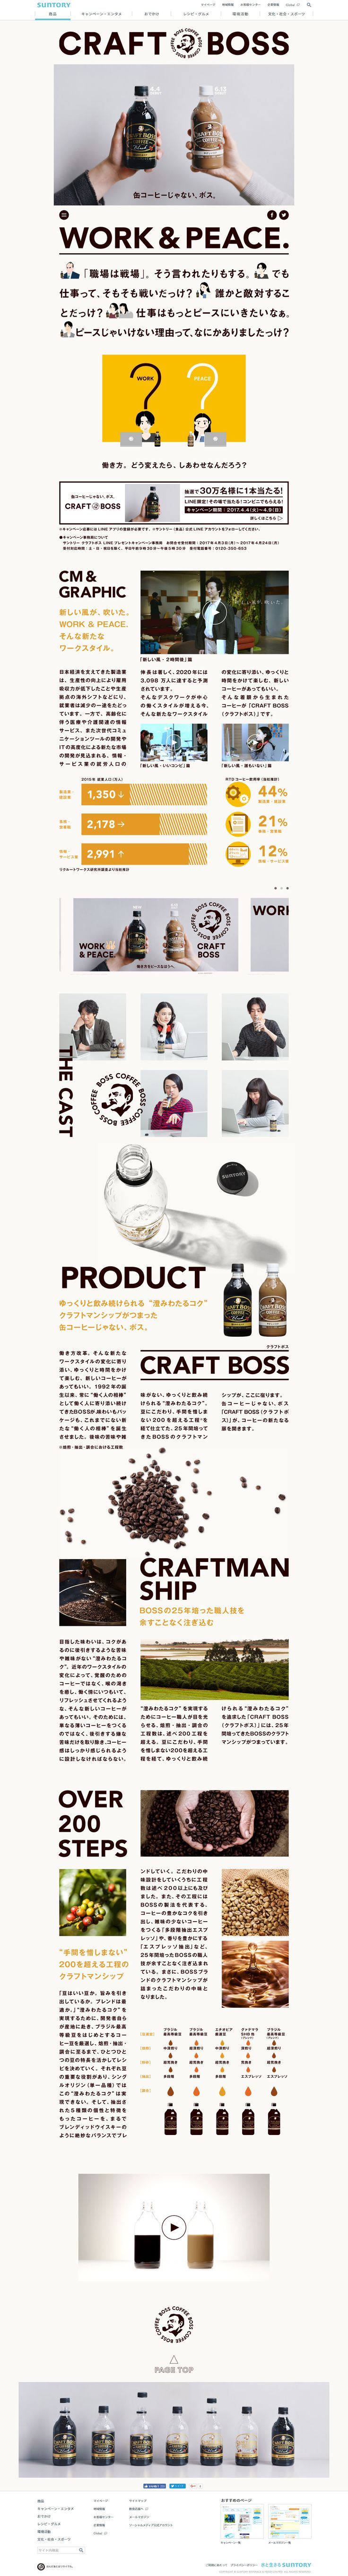 CRAFT BOSS(クラフトボス) サントリー http://www.suntory.co.jp/softdrink/craftboss/